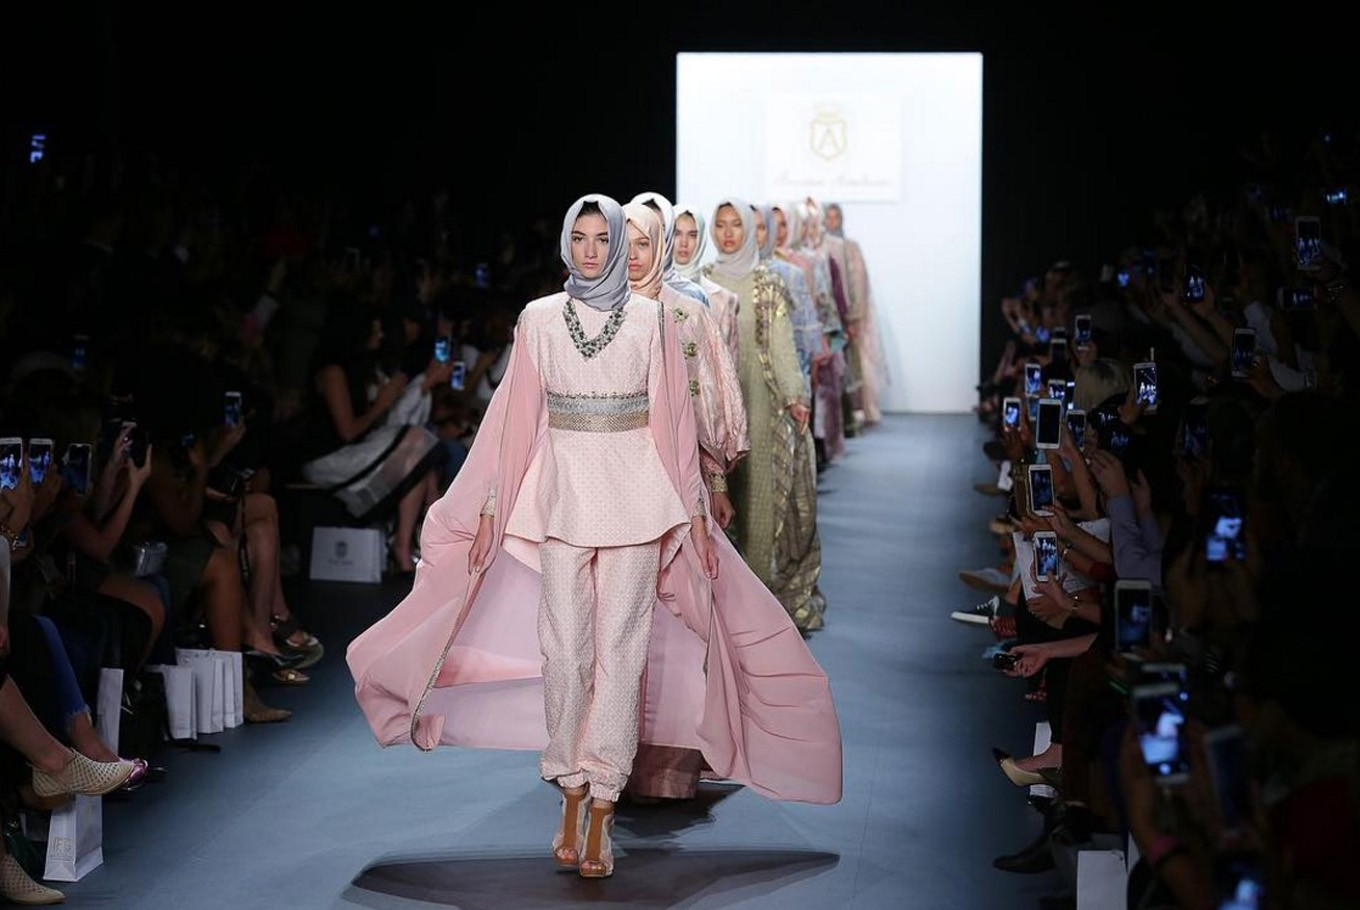 Bringing Indonesia S Muslim Fashion To The New York Stage Lifestyle The Jakarta Post